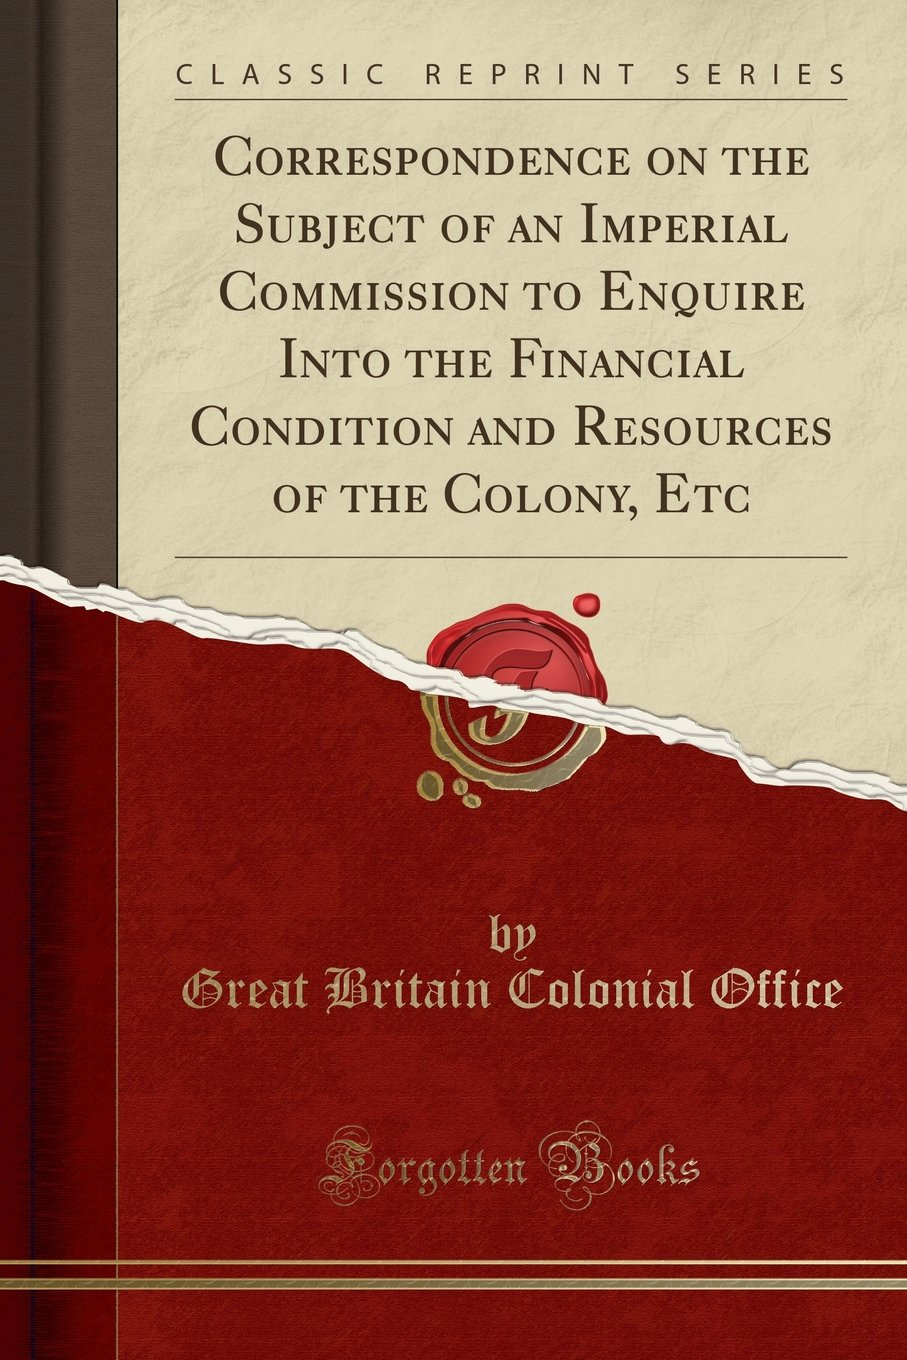 Correspondence on the Subject of an Imperial Commission to Enquire Into the Financial Condition and Resources of the Colony, Etc (Classic Reprint) PDF